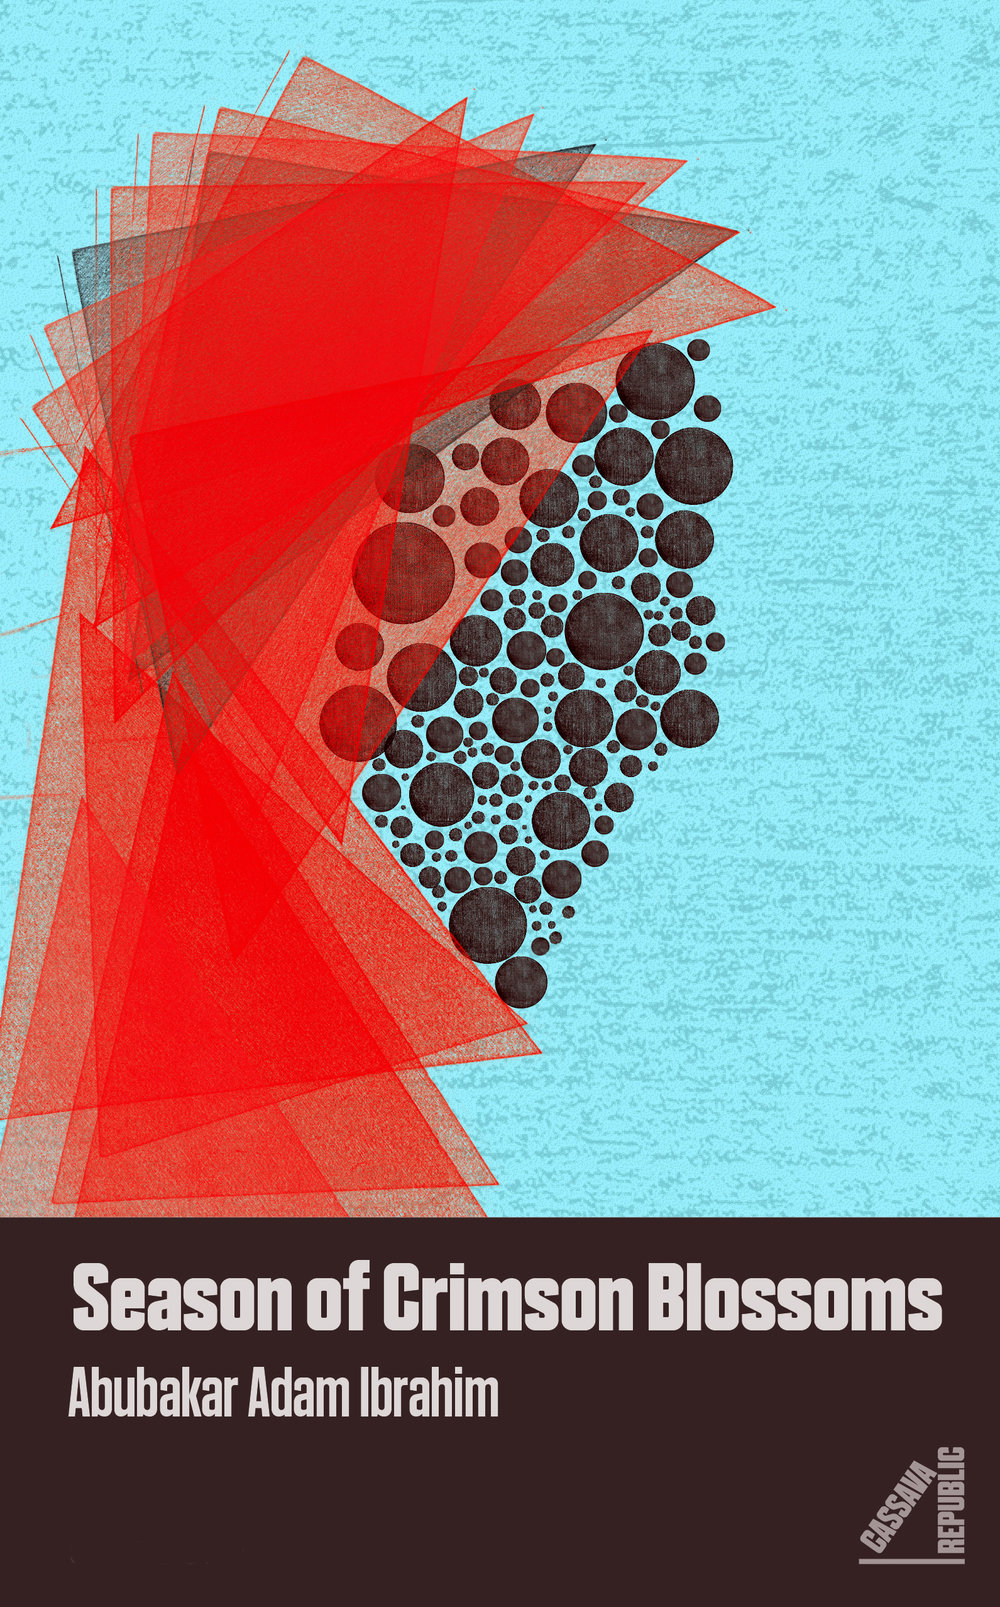 Season of Crimson Blossoms.jpg